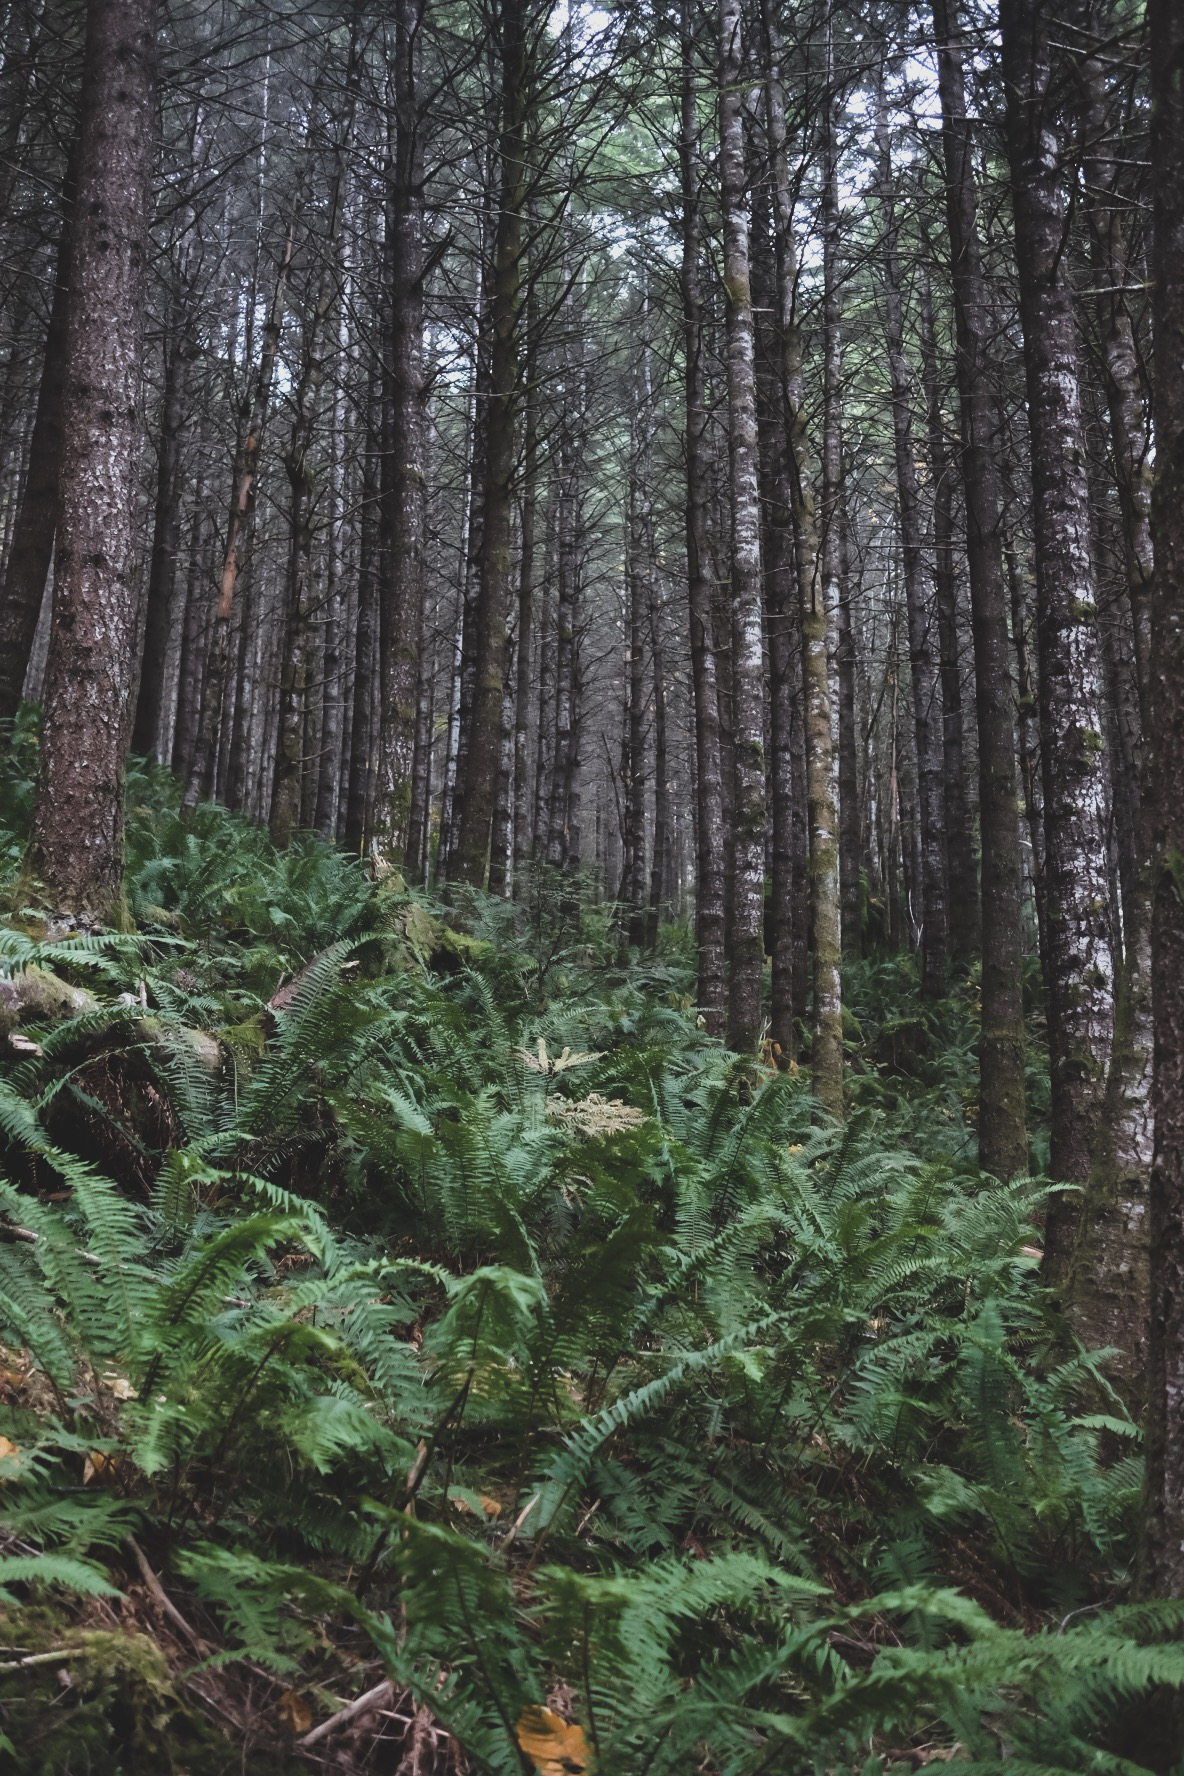 These Woods, Them Ferns of Squamish